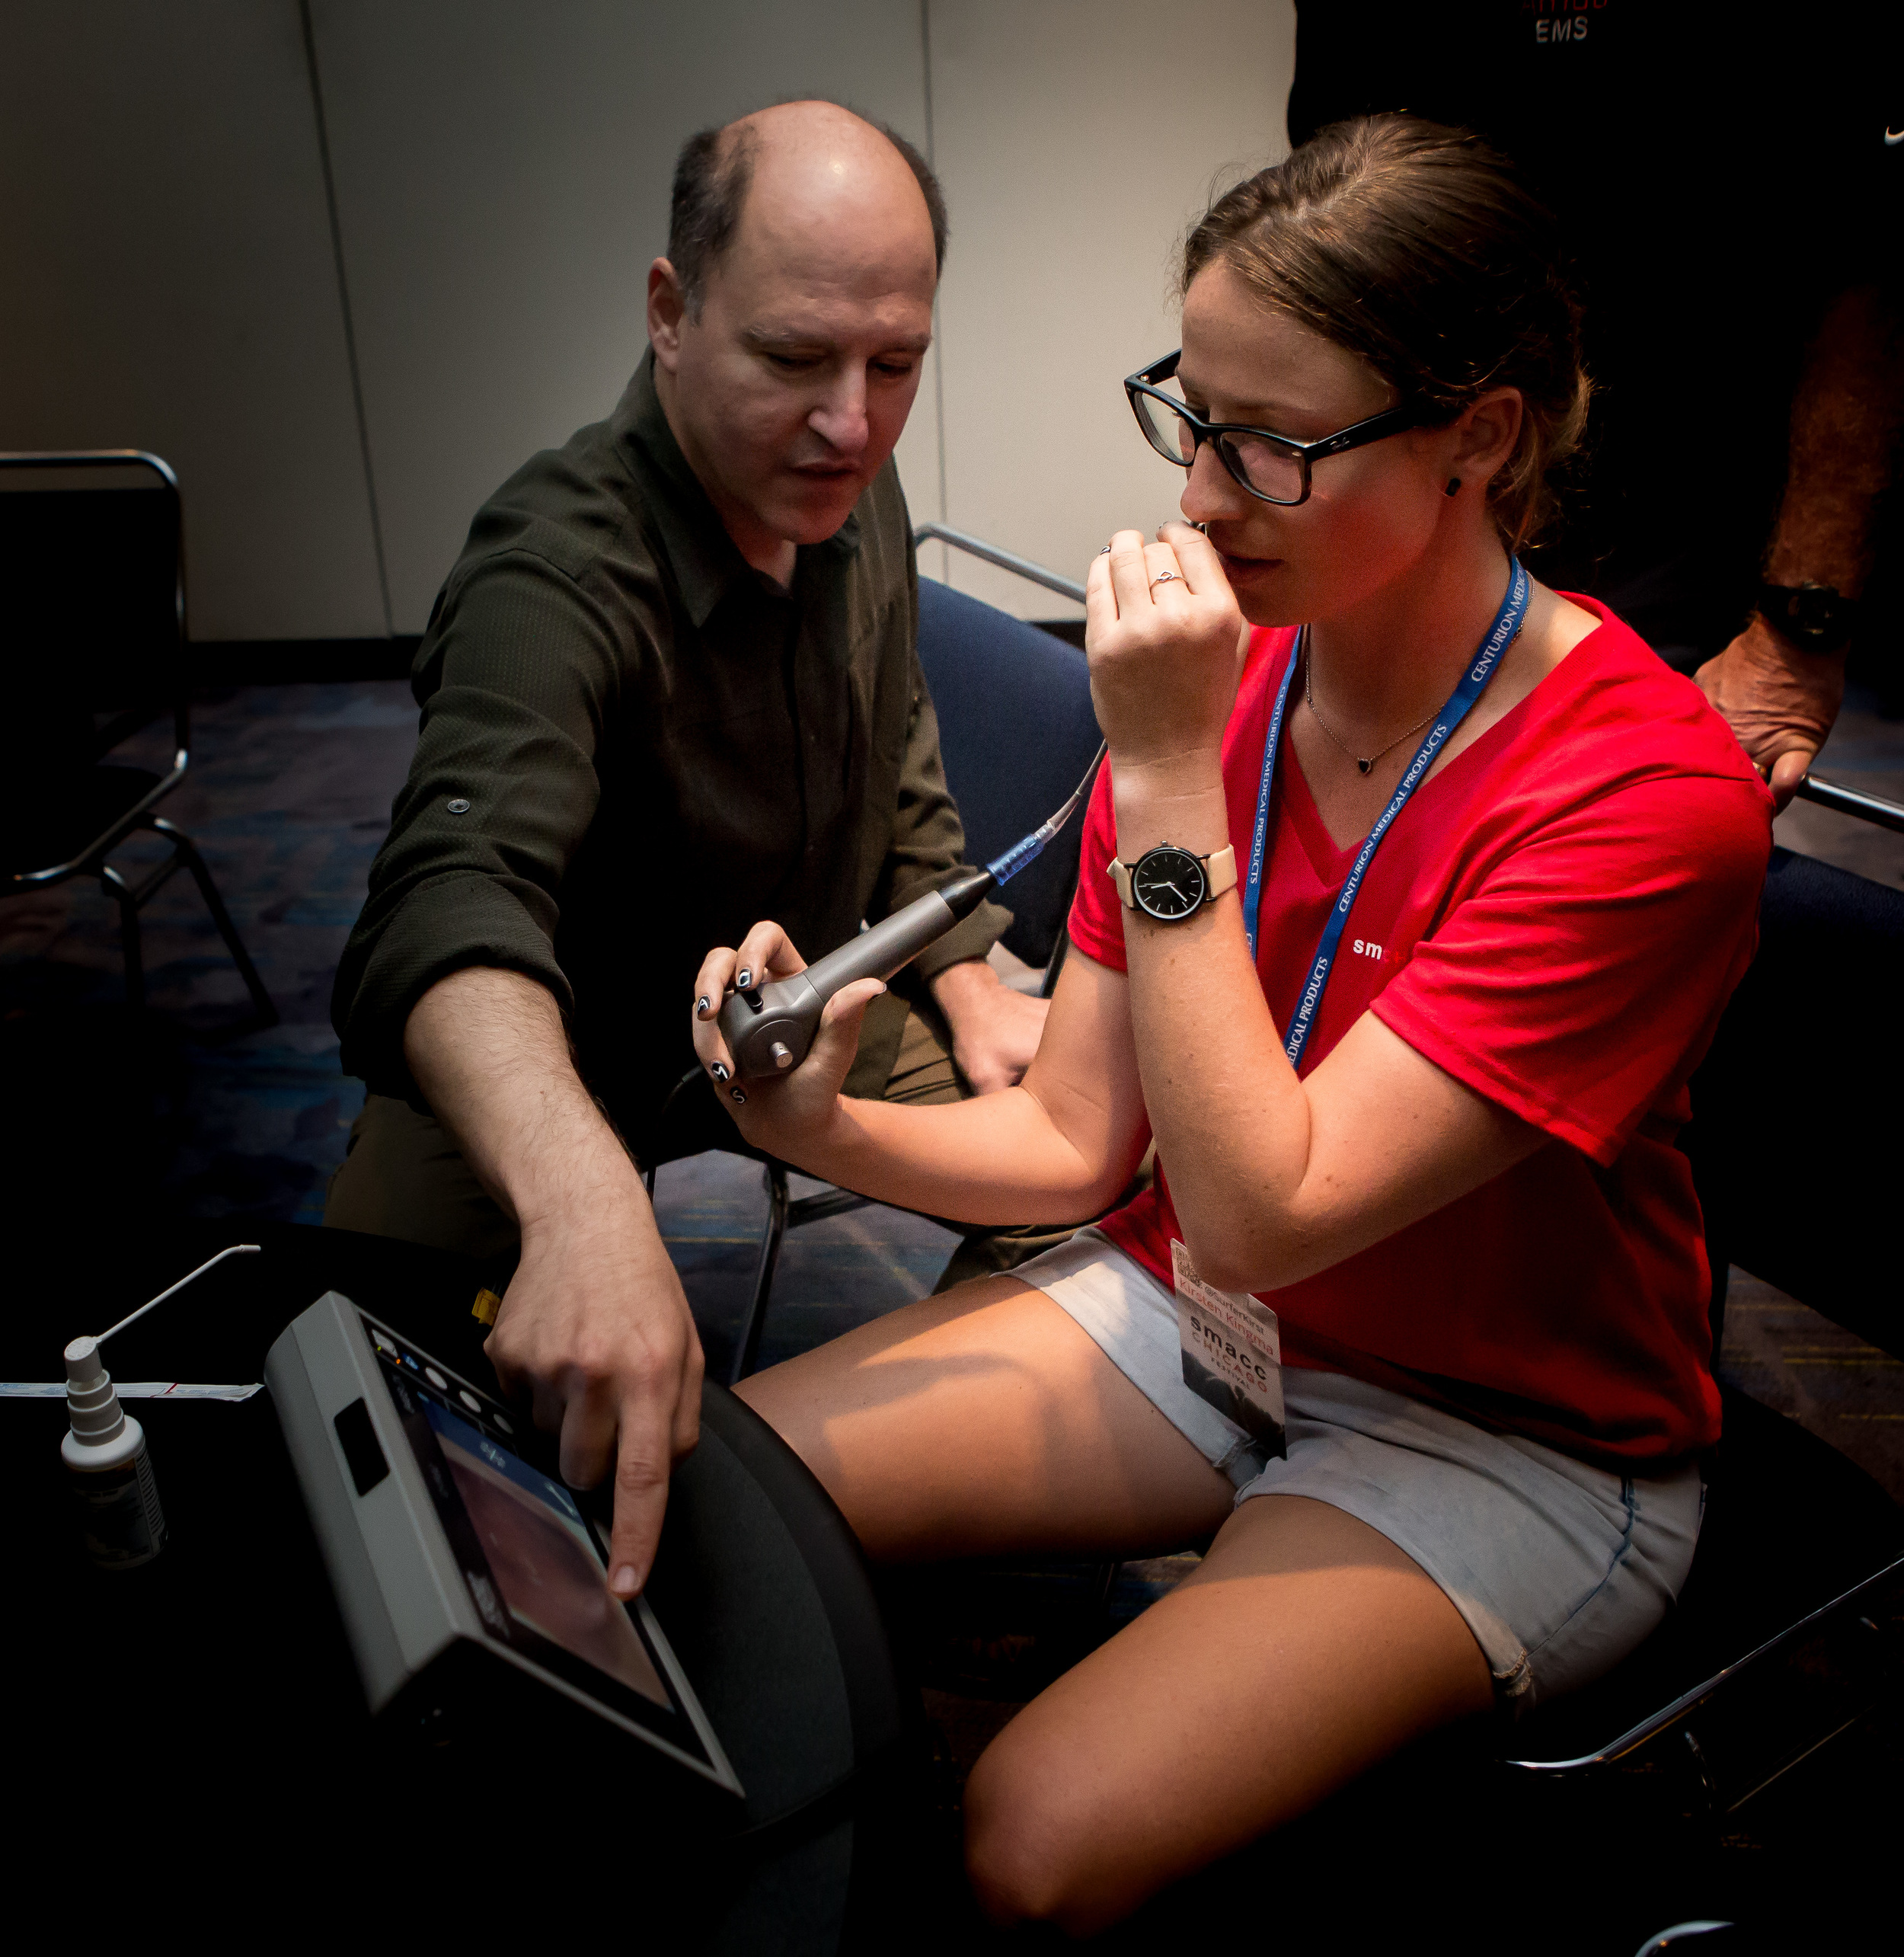 20150624-SMACC AirwayIMGL9389.jpg